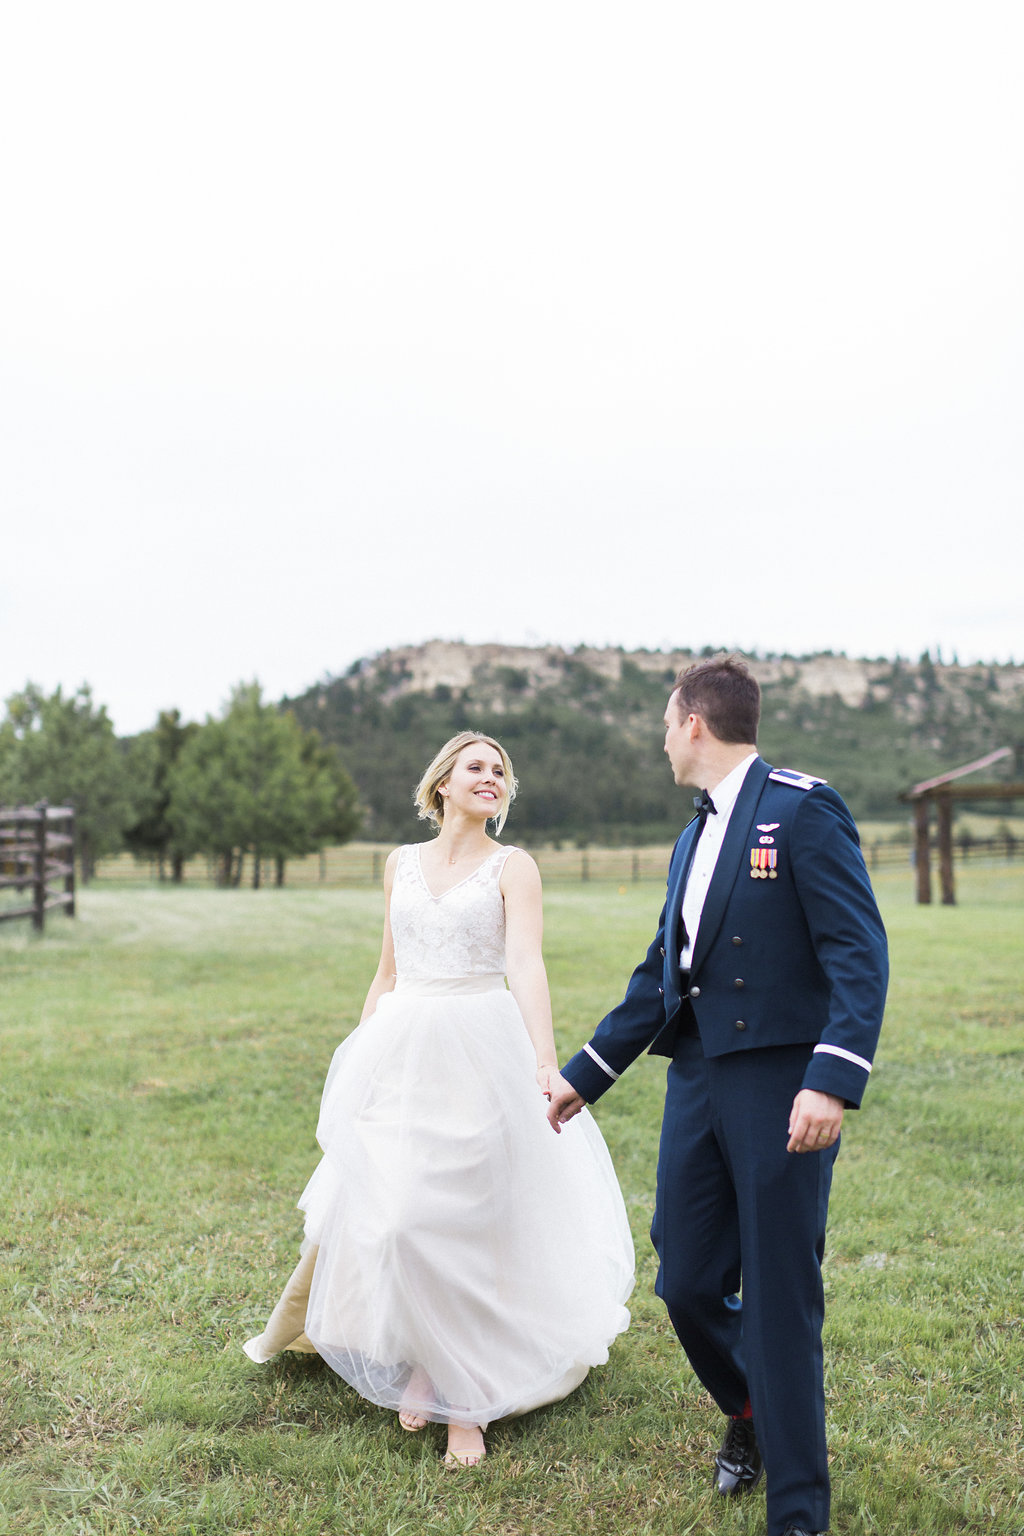 Neutral Wedding Colors - Air Force Chapel Wedding - Spruce Mountain Ranch Wedding